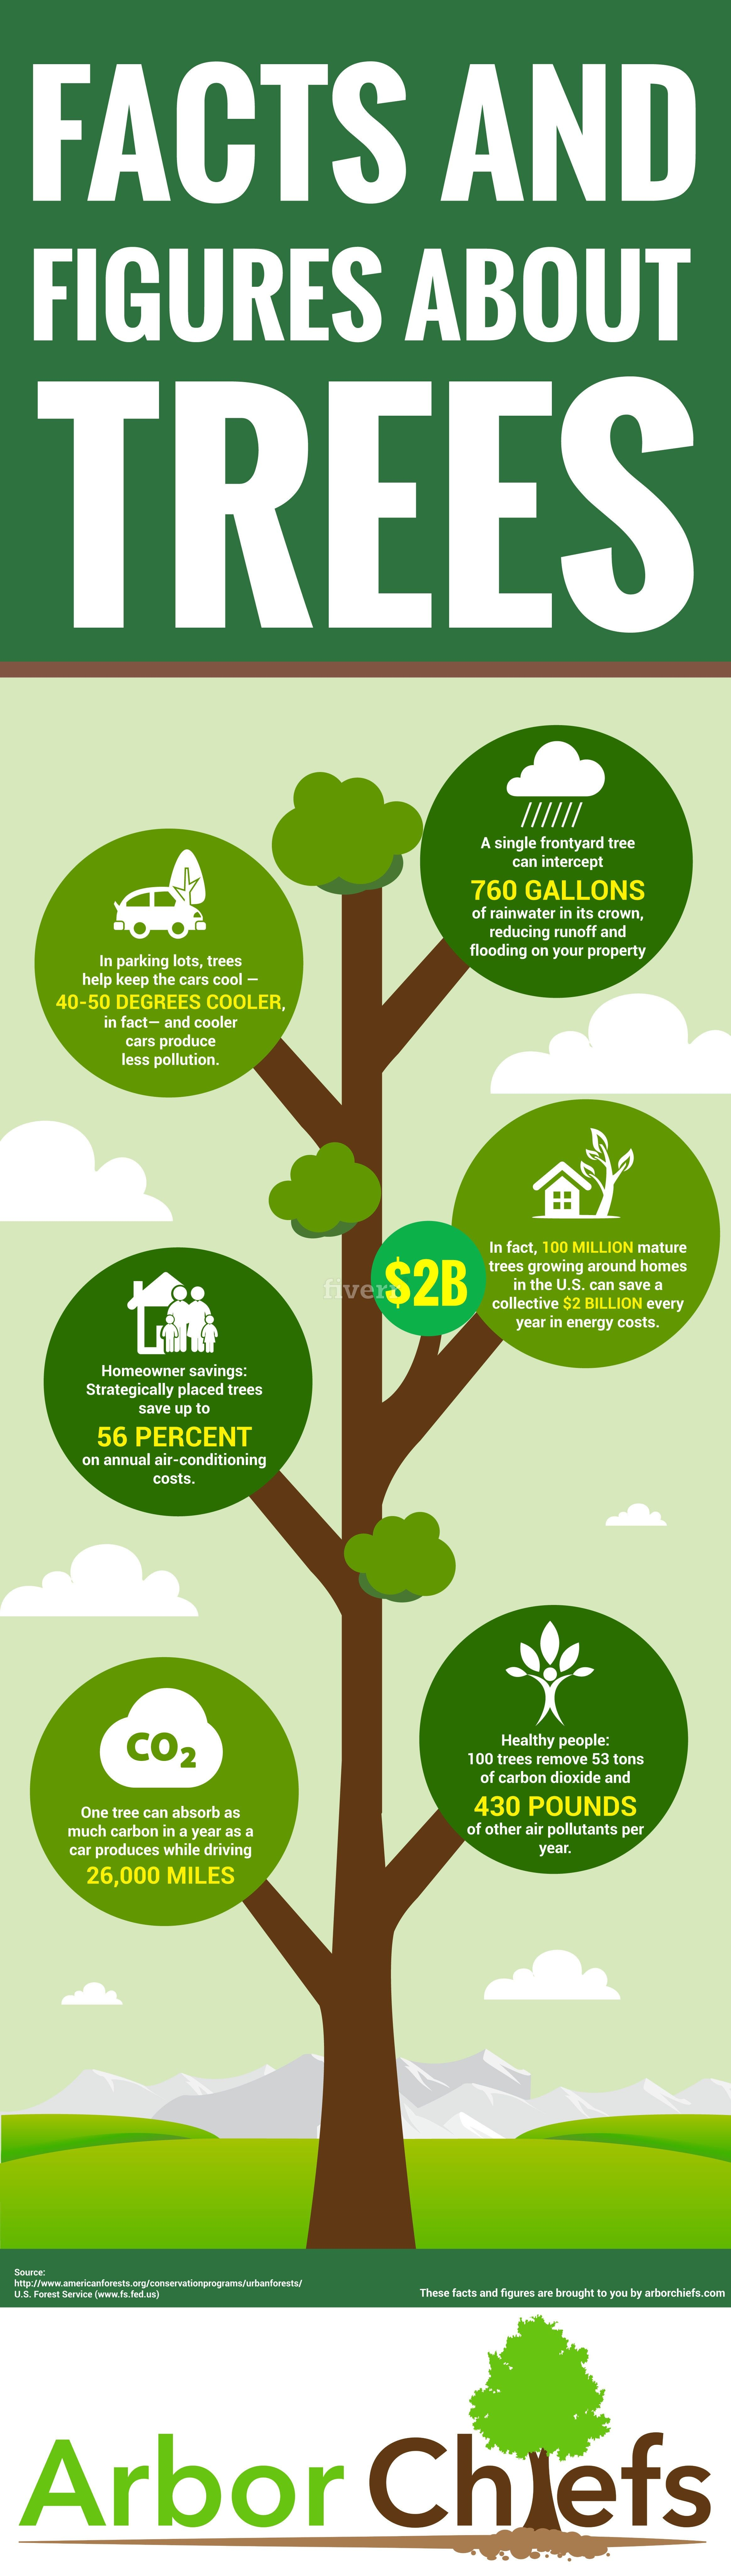 Amazing Facts And Figures About Trees Infographic Fun Facts Recycling Facts Facts